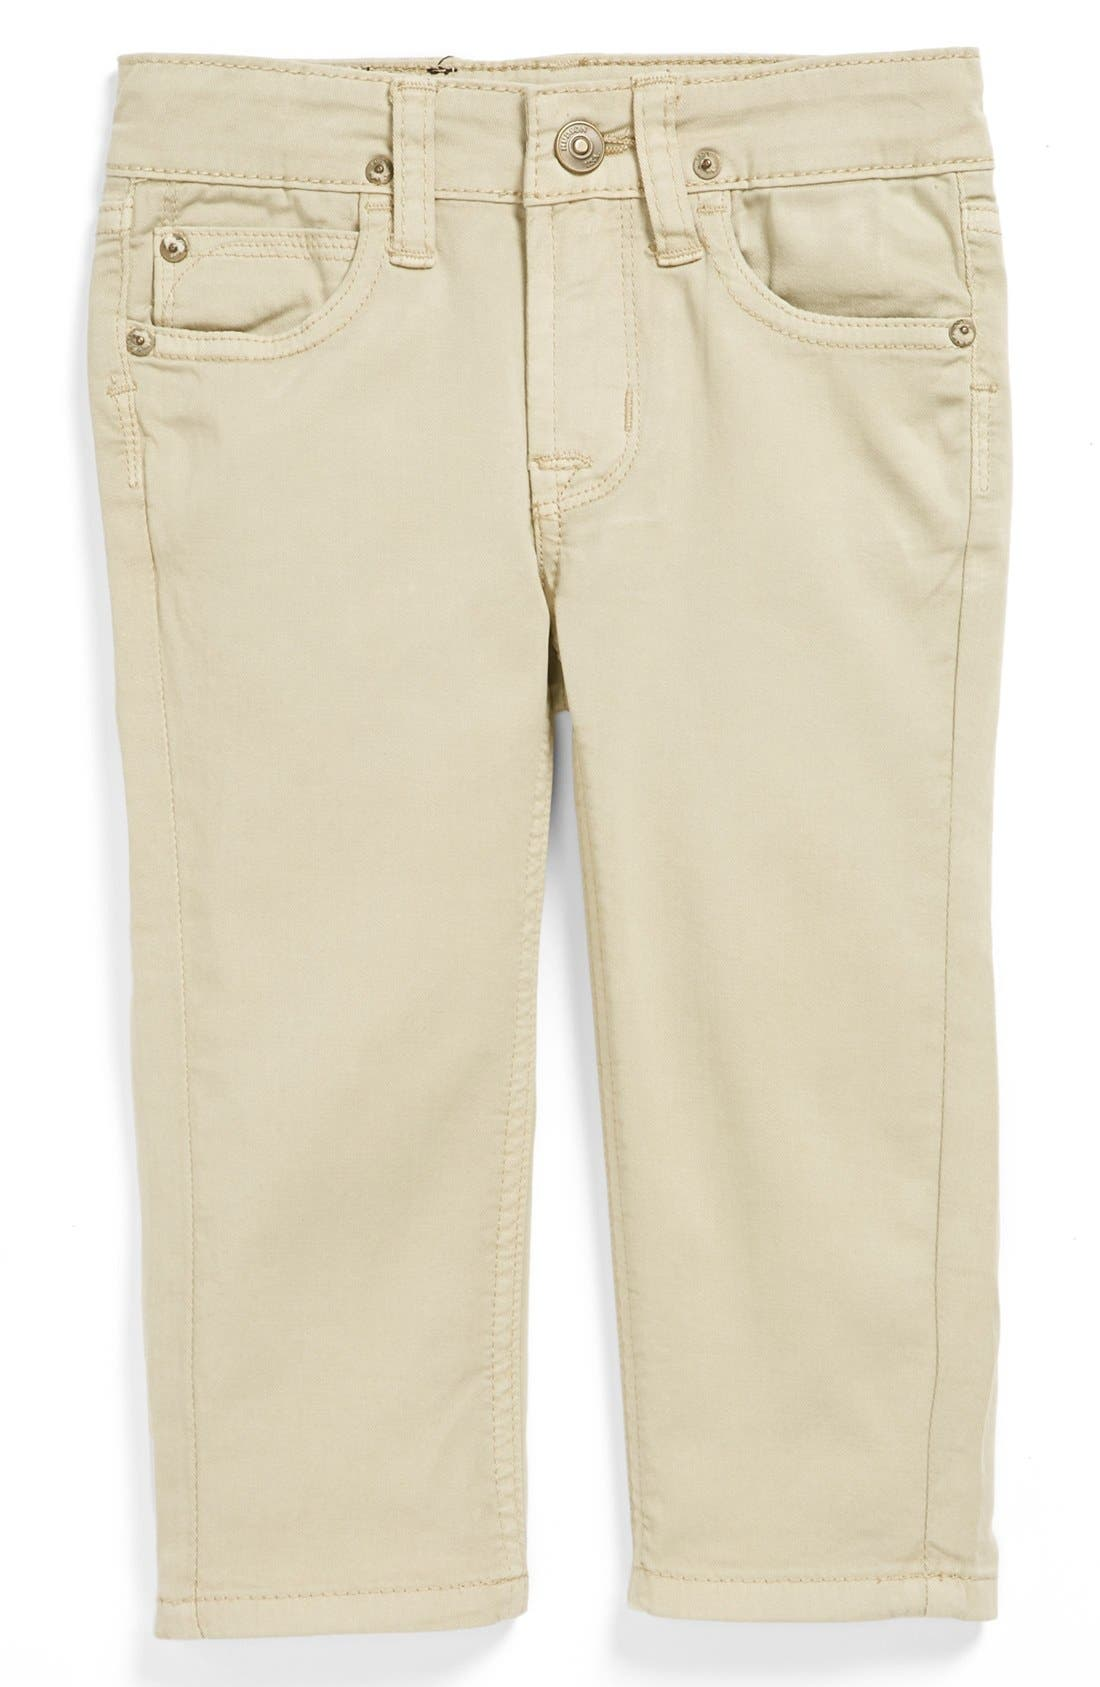 Alternate Image 1 Selected - Hudson Kids Jeans (Baby Boys)